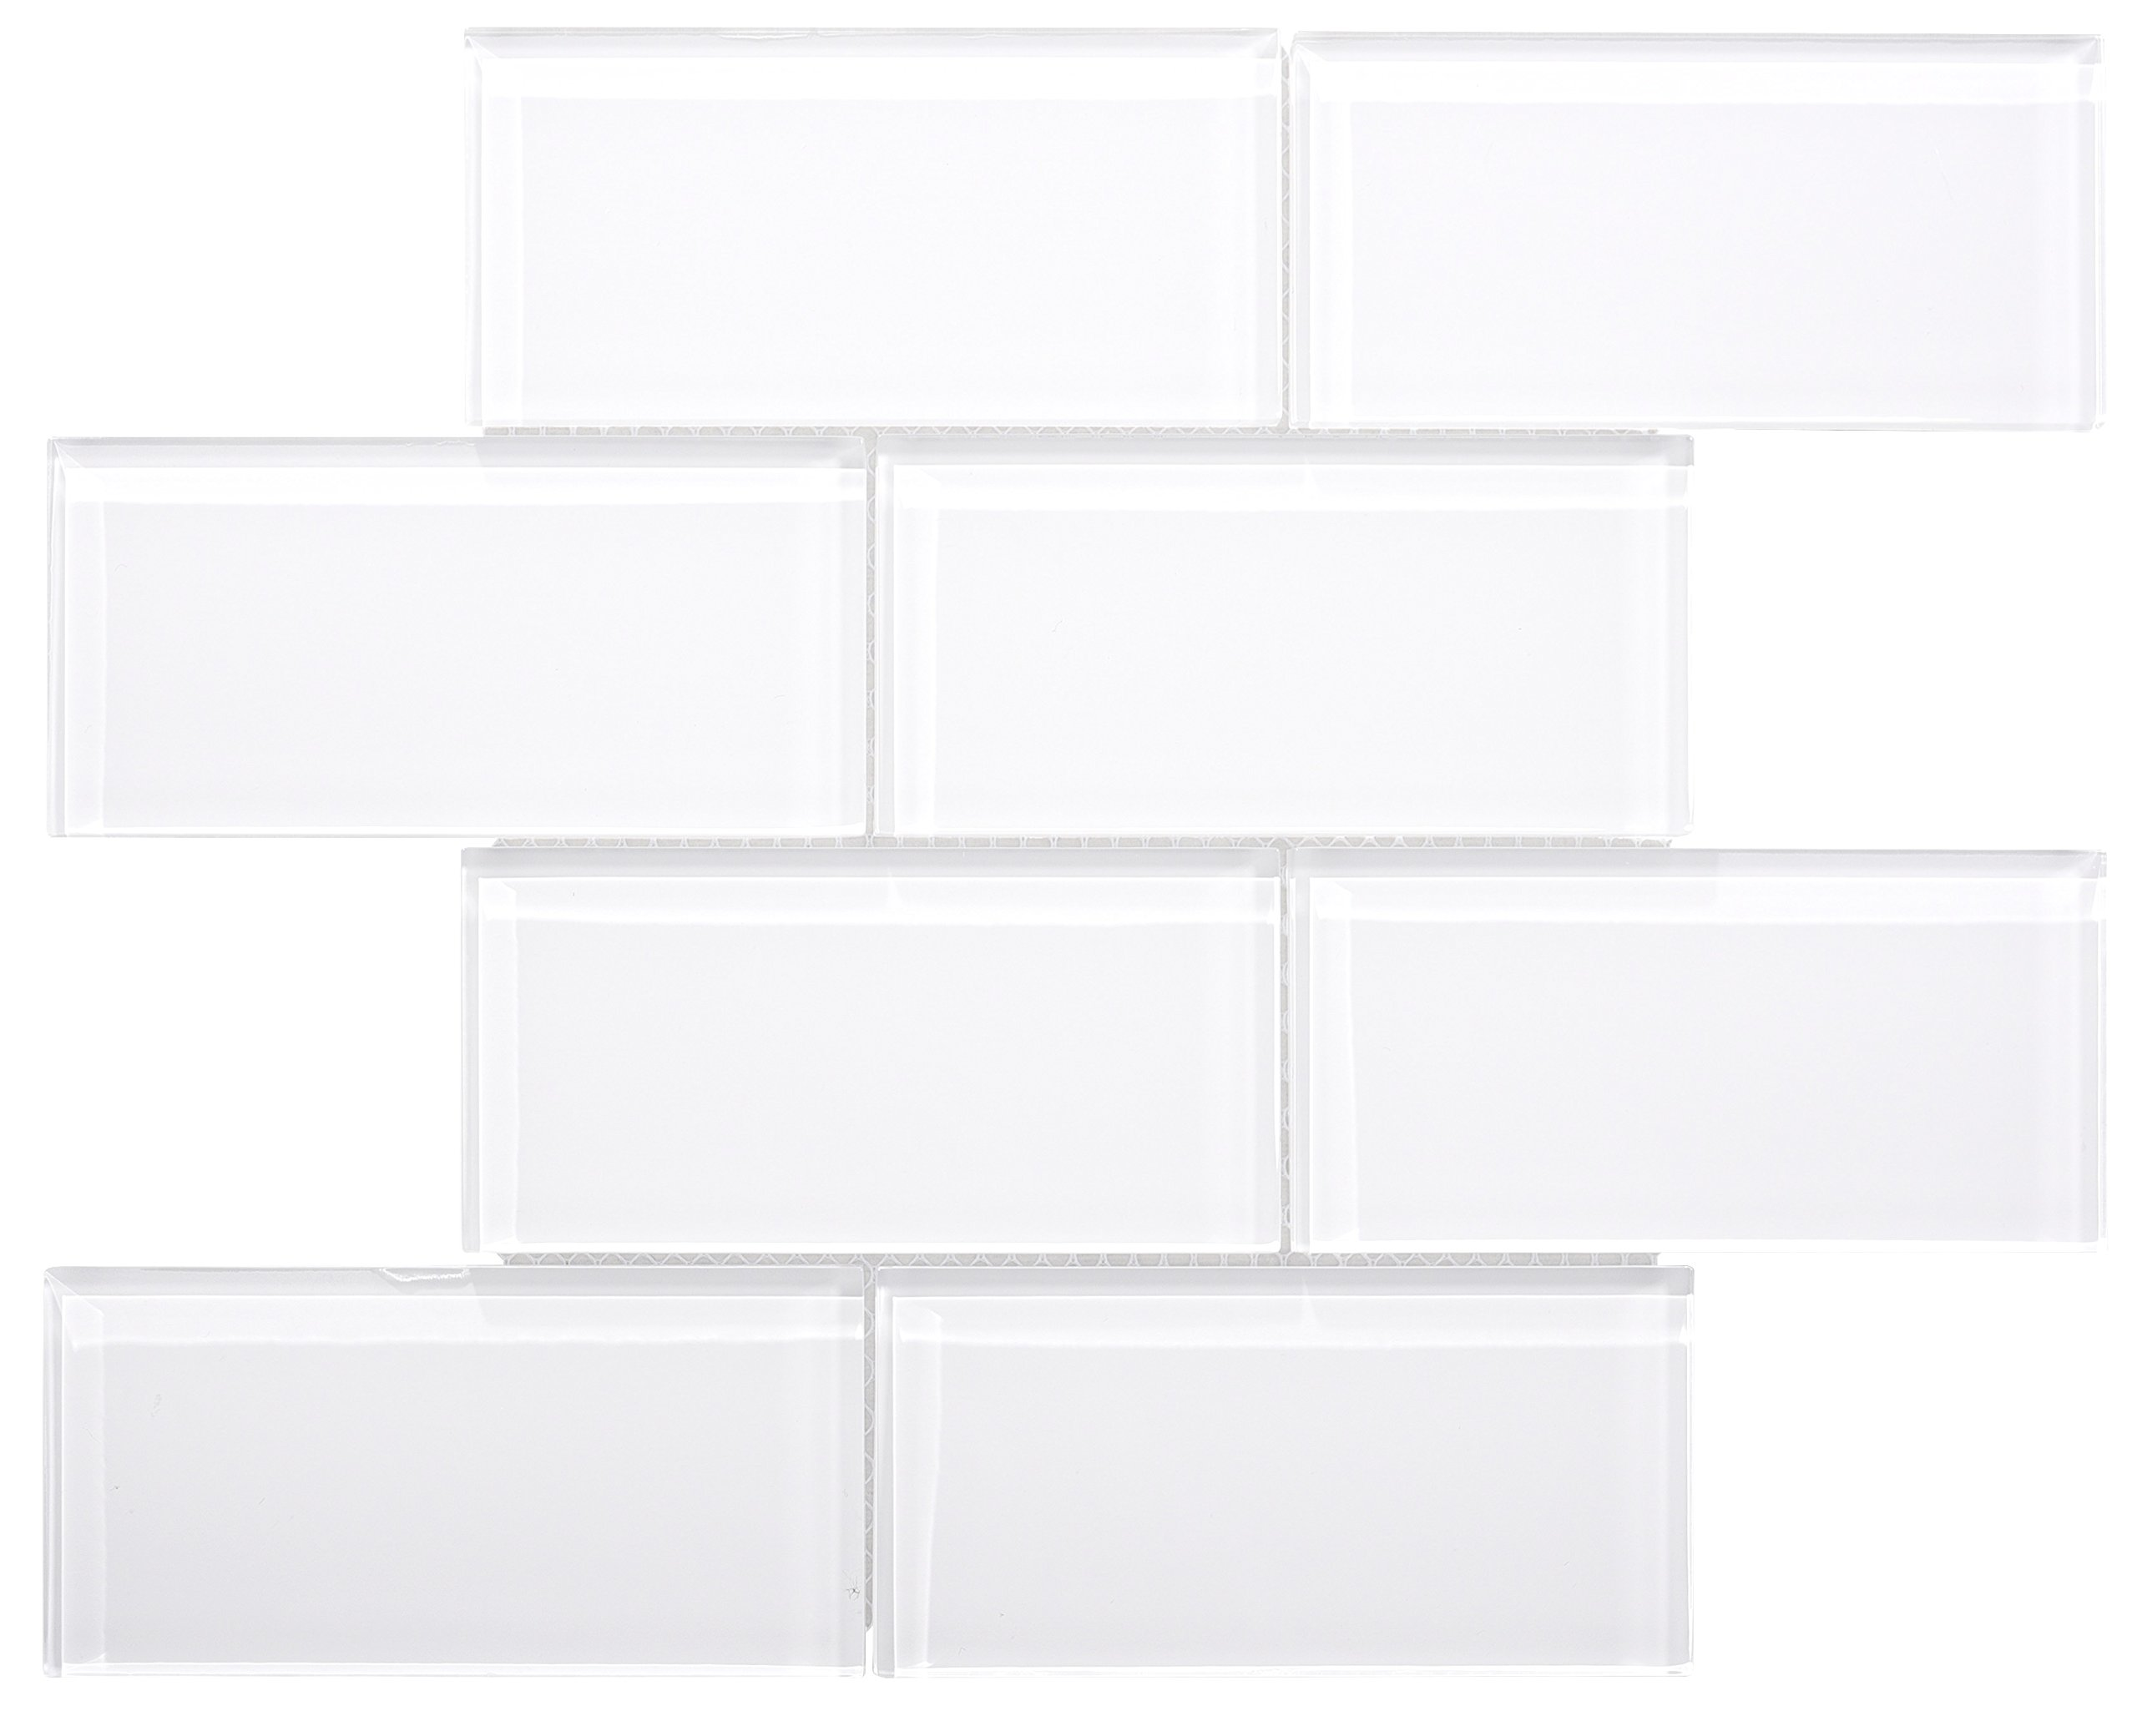 Glass Subway Backsplash Tile Kolors Series in White for Kitchen and Bathroom by WS Tiles - WST-01C - 40 Tiles (3'' x 6'' Mosaic 5 SqFt, Super White)